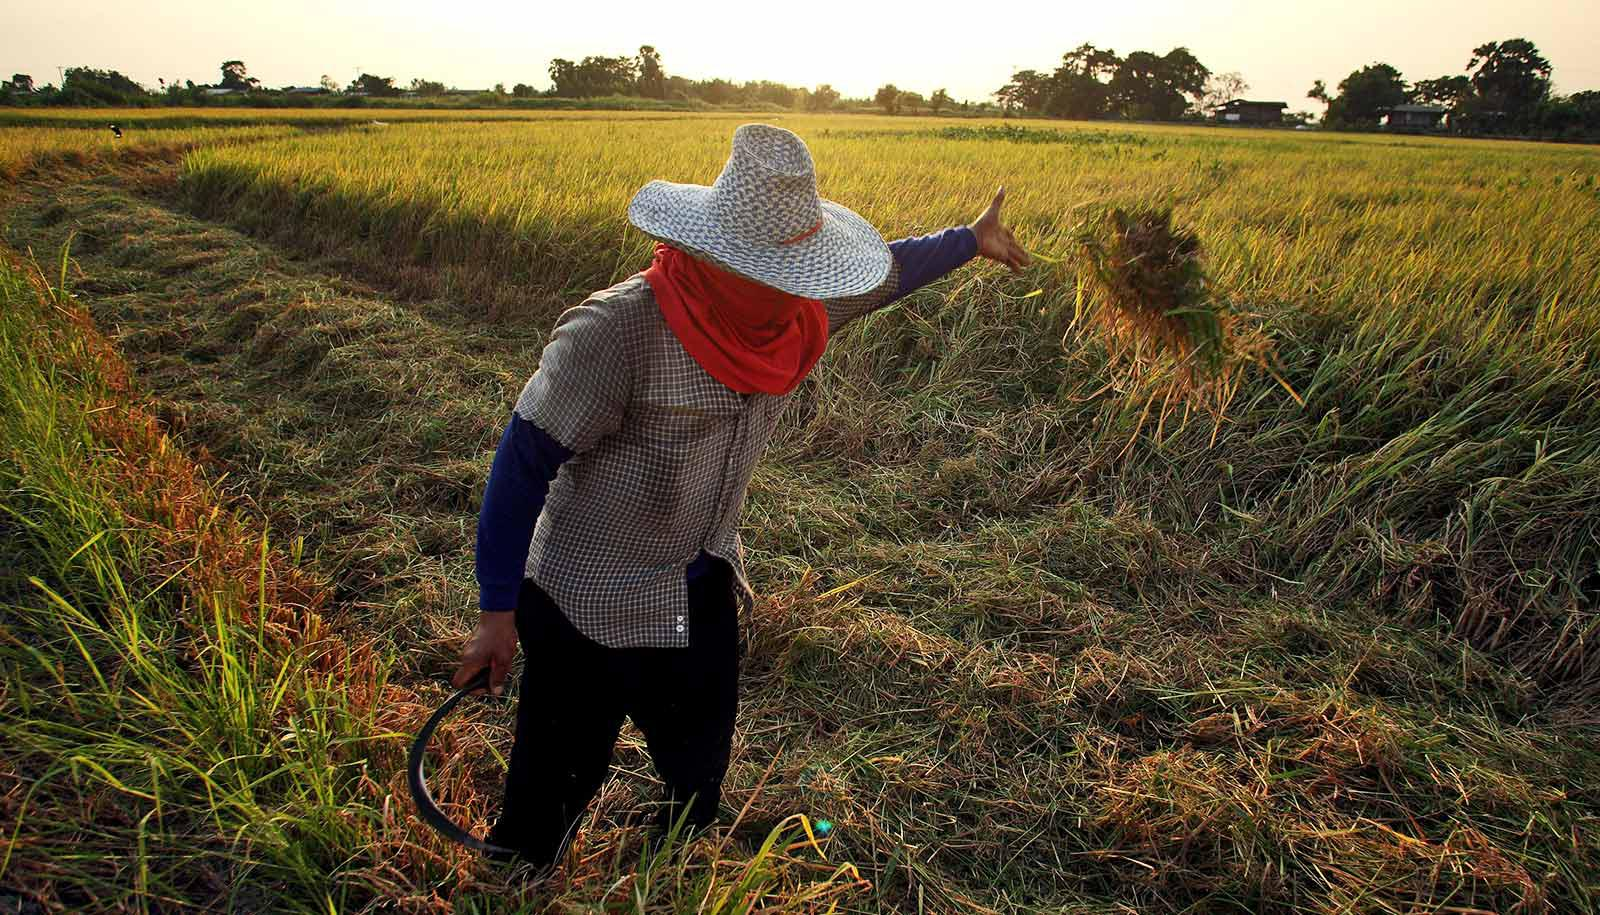 person in hat and scarf tosses clod of rice plant in field